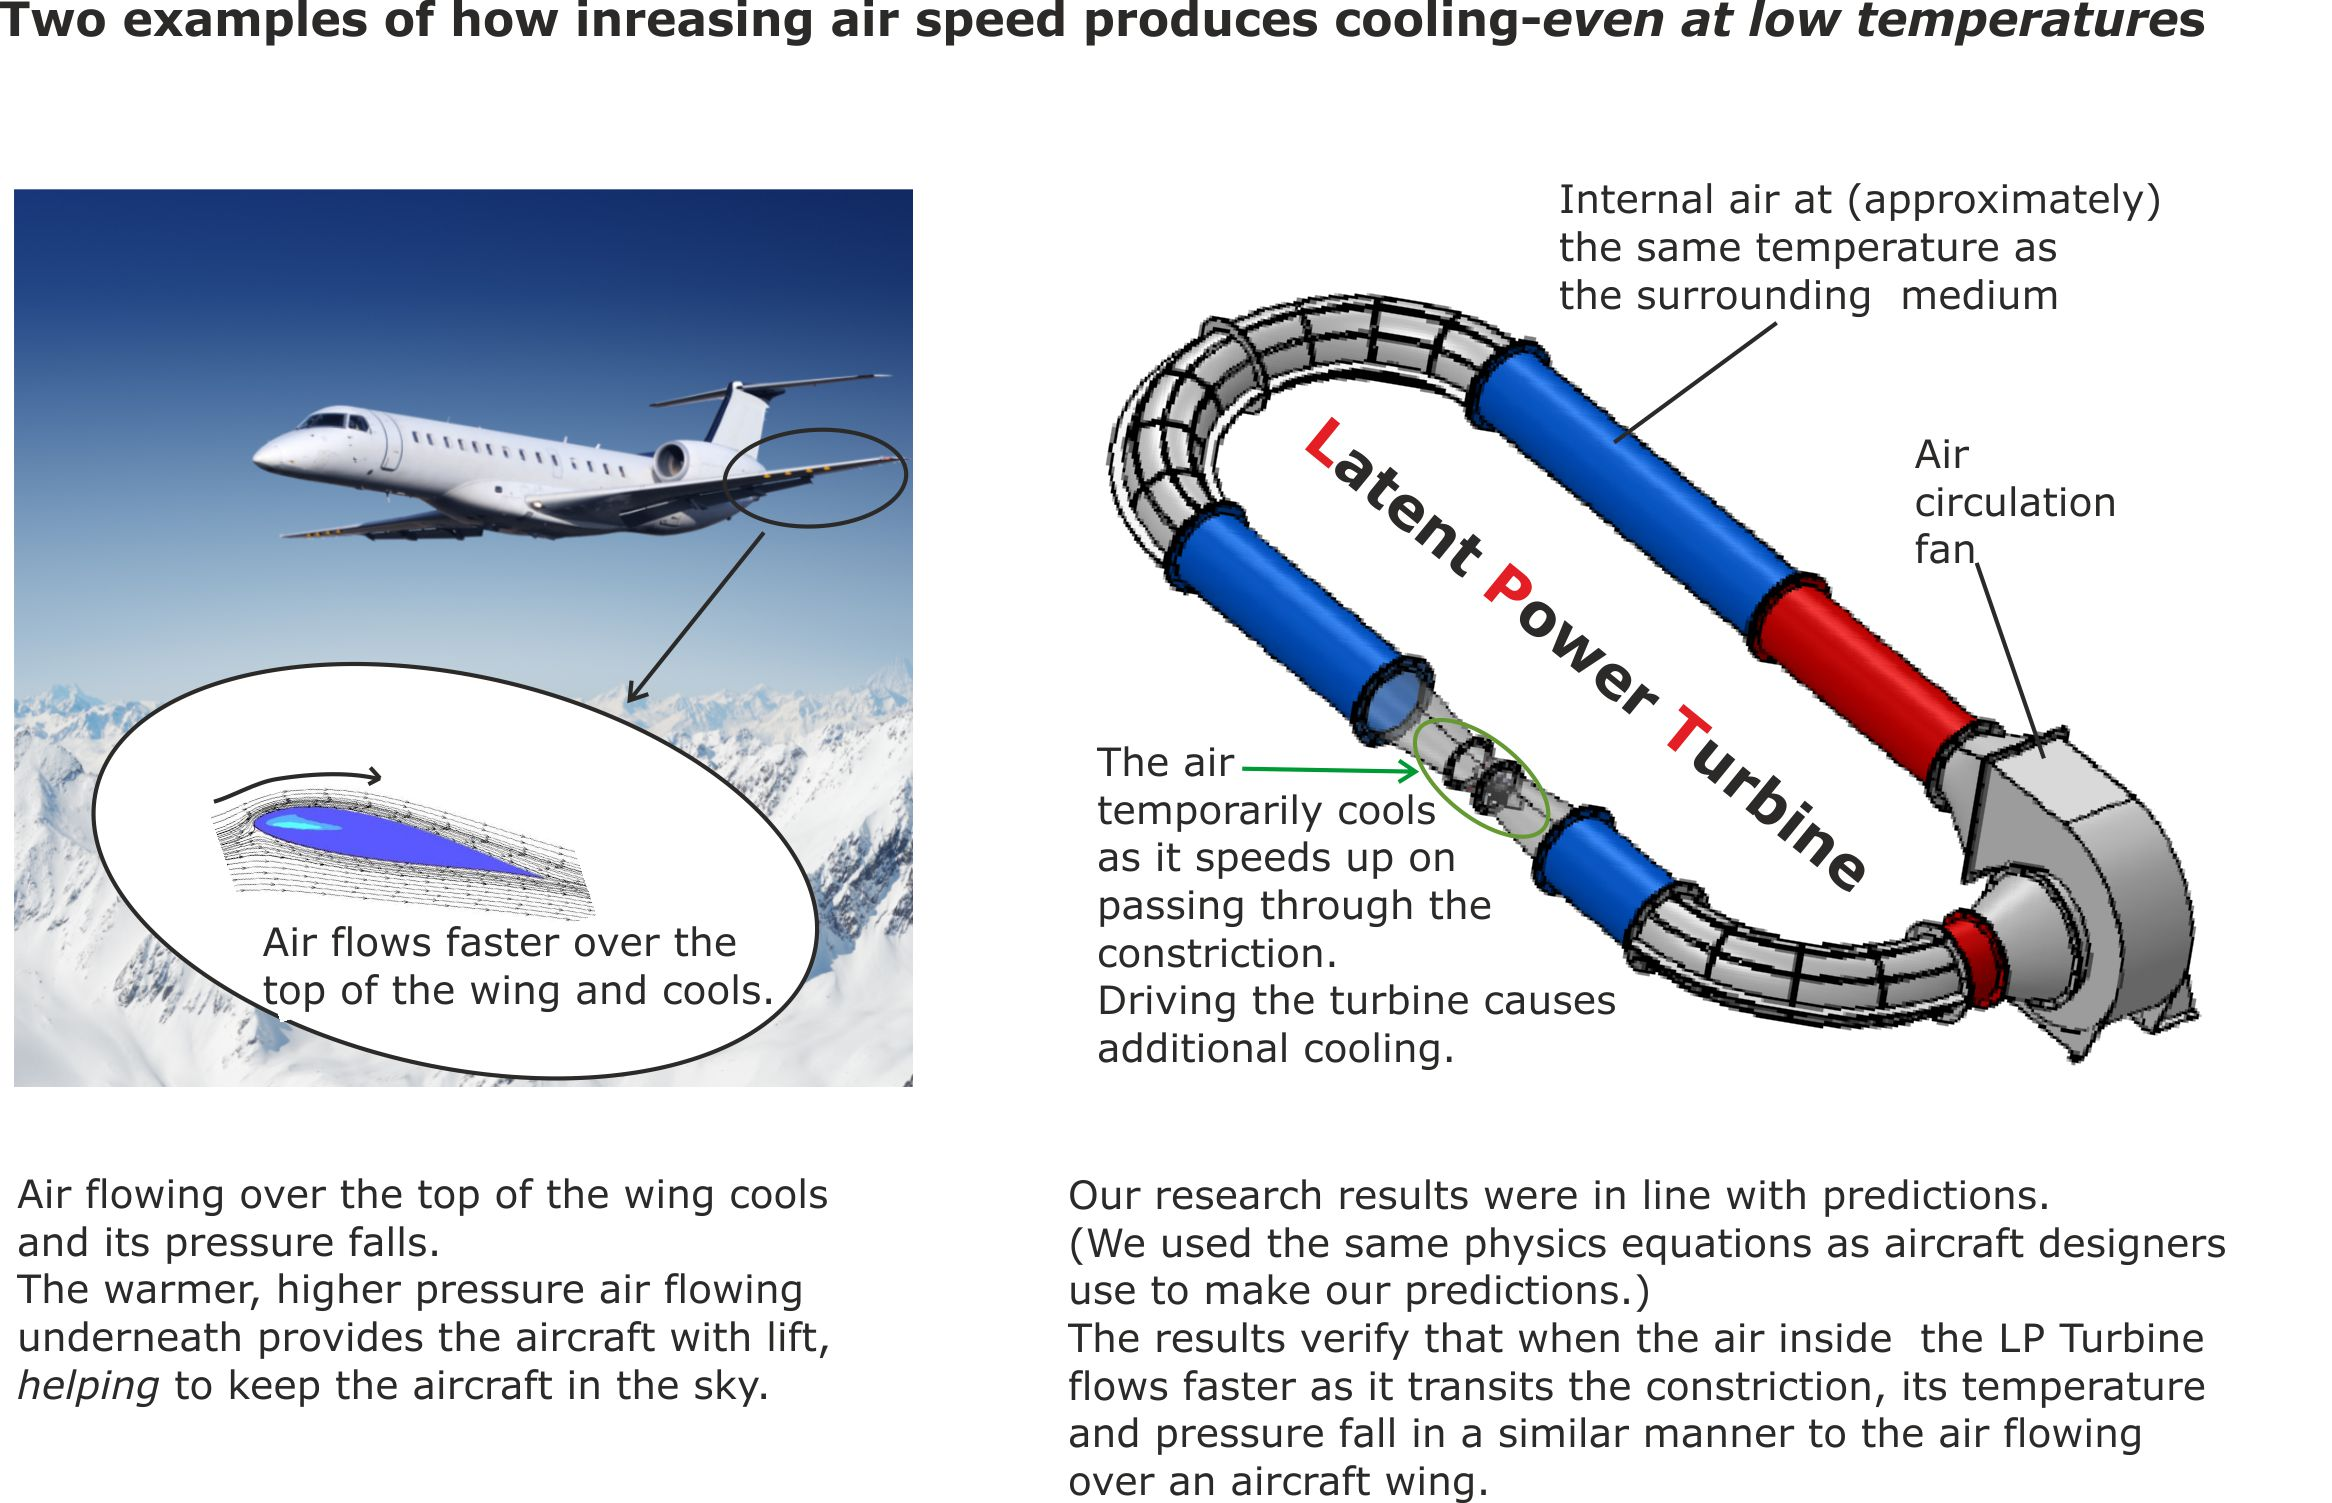 Uncreasing air sped produces cooling